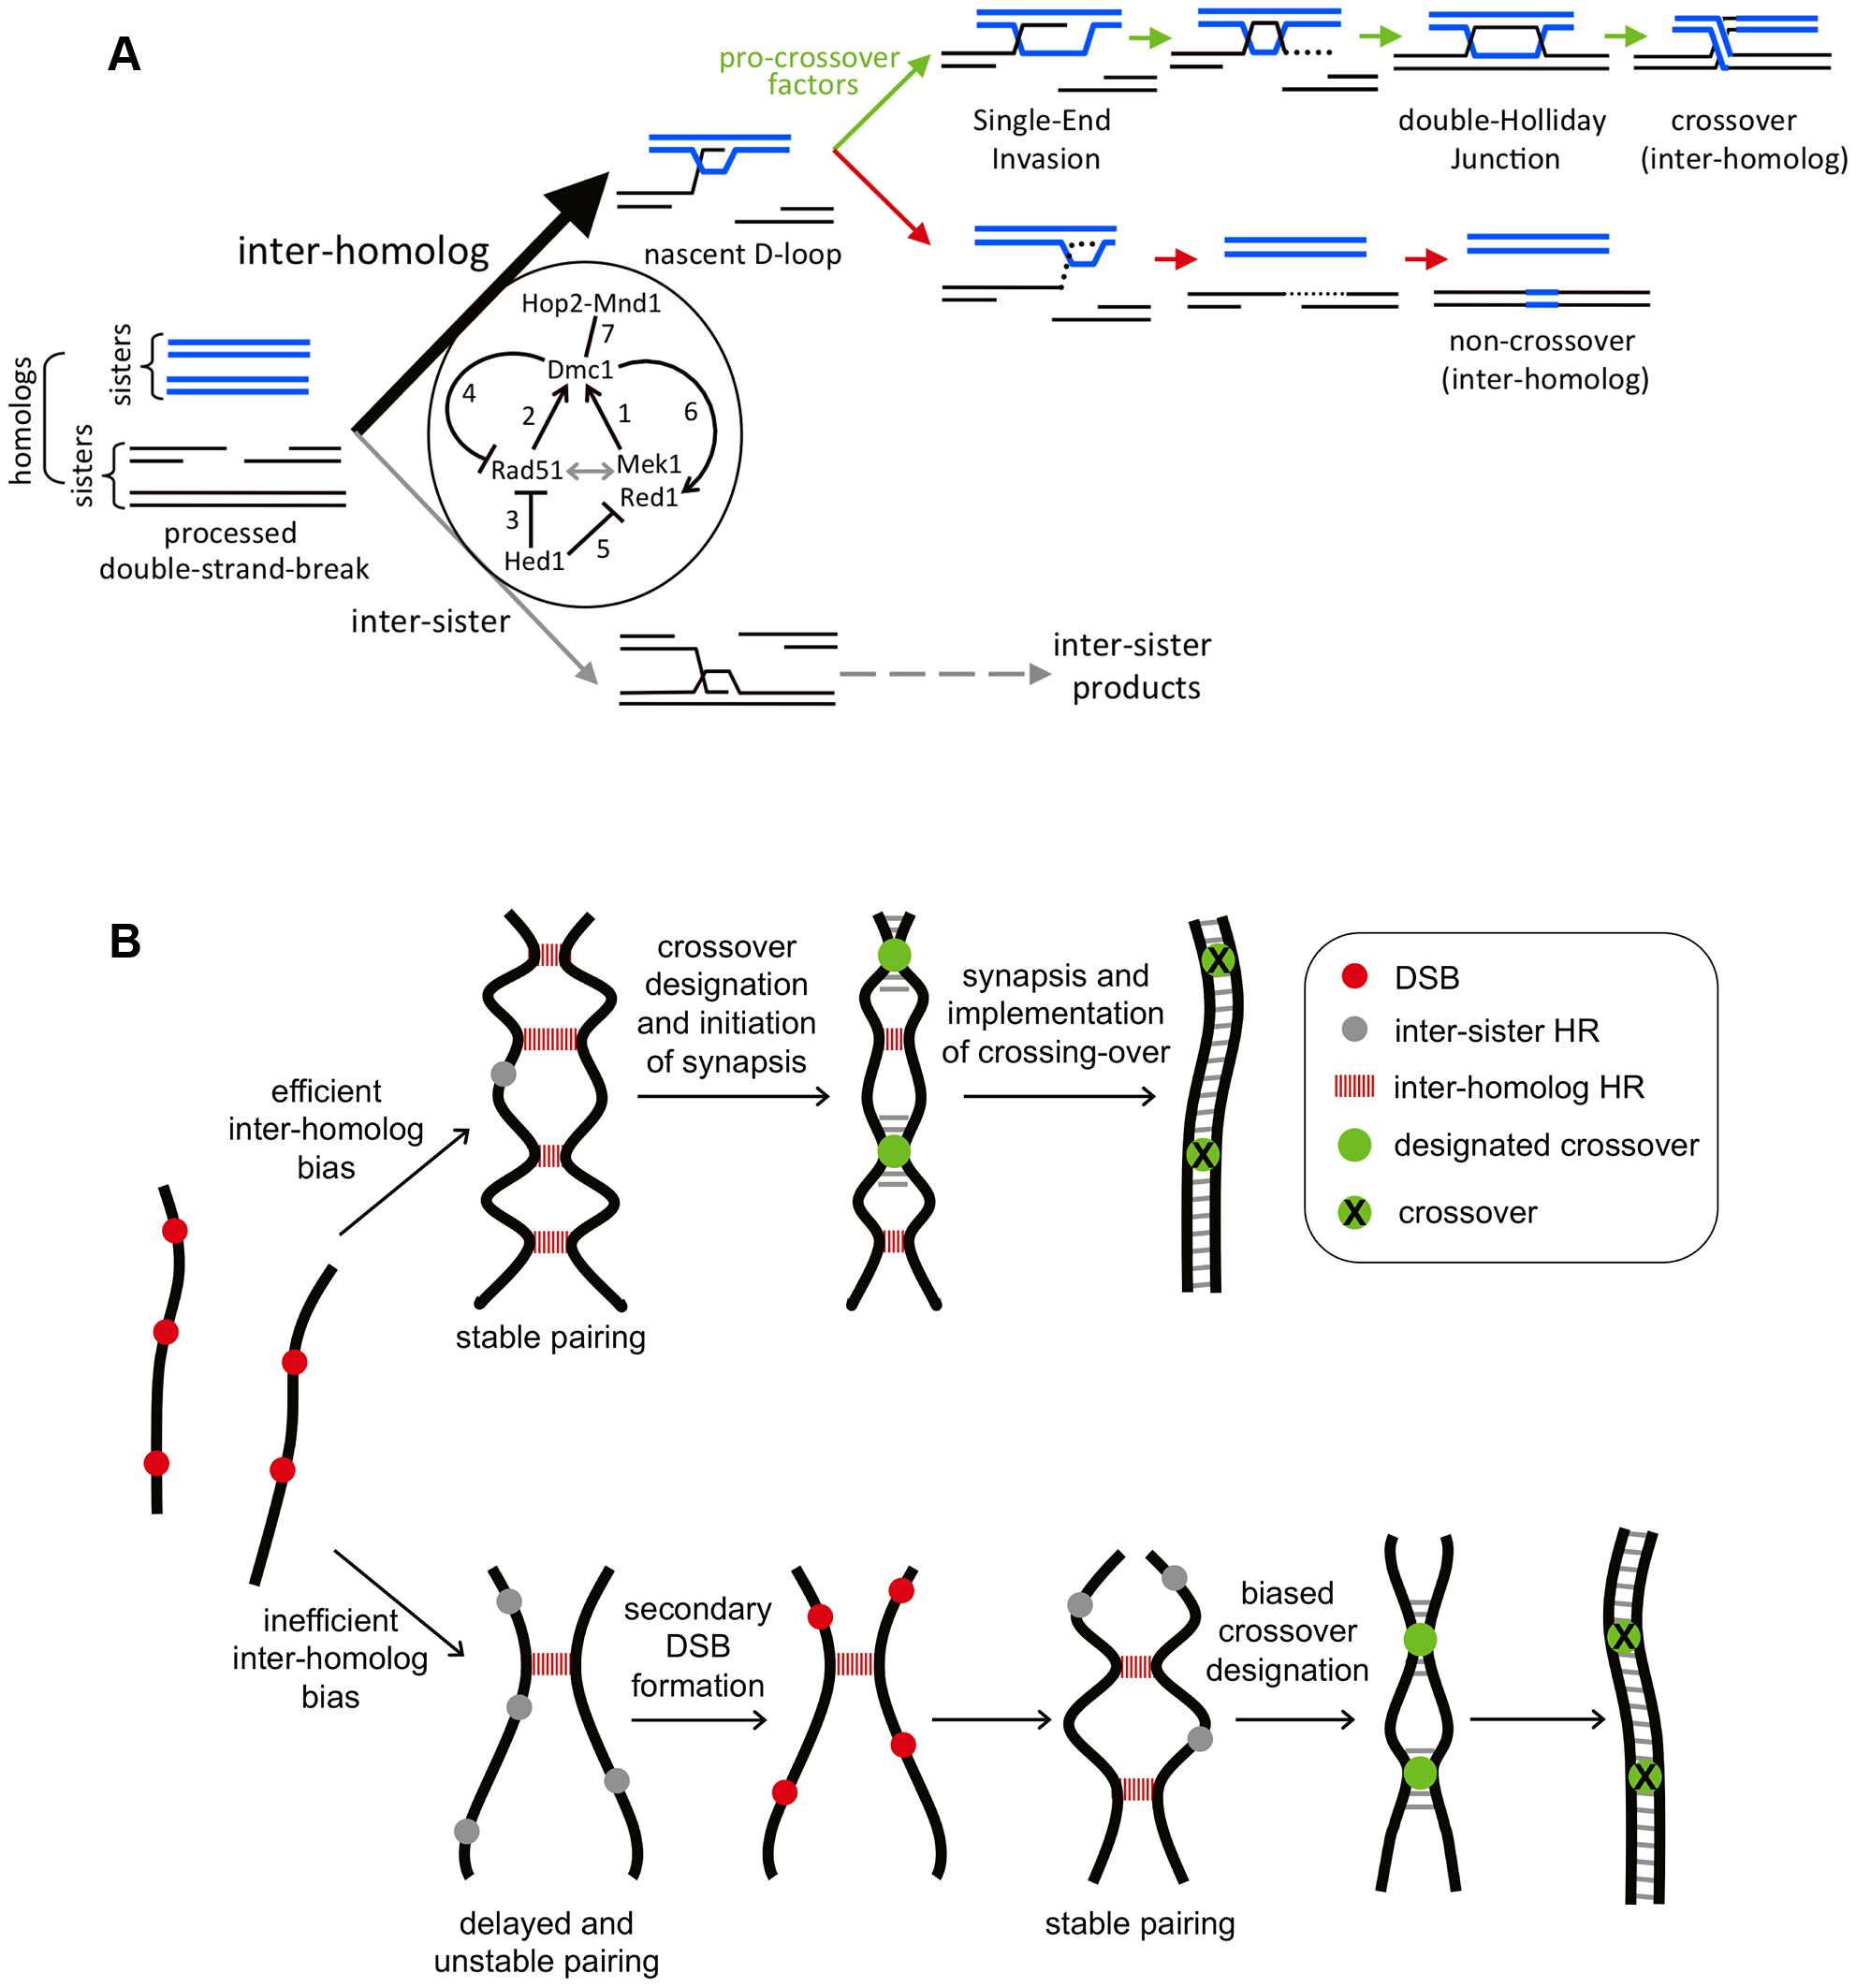 Models for Rad51-Dmc1 mediated interhomolog bias and homeostatic responses to inefficient interhomolog interactions.